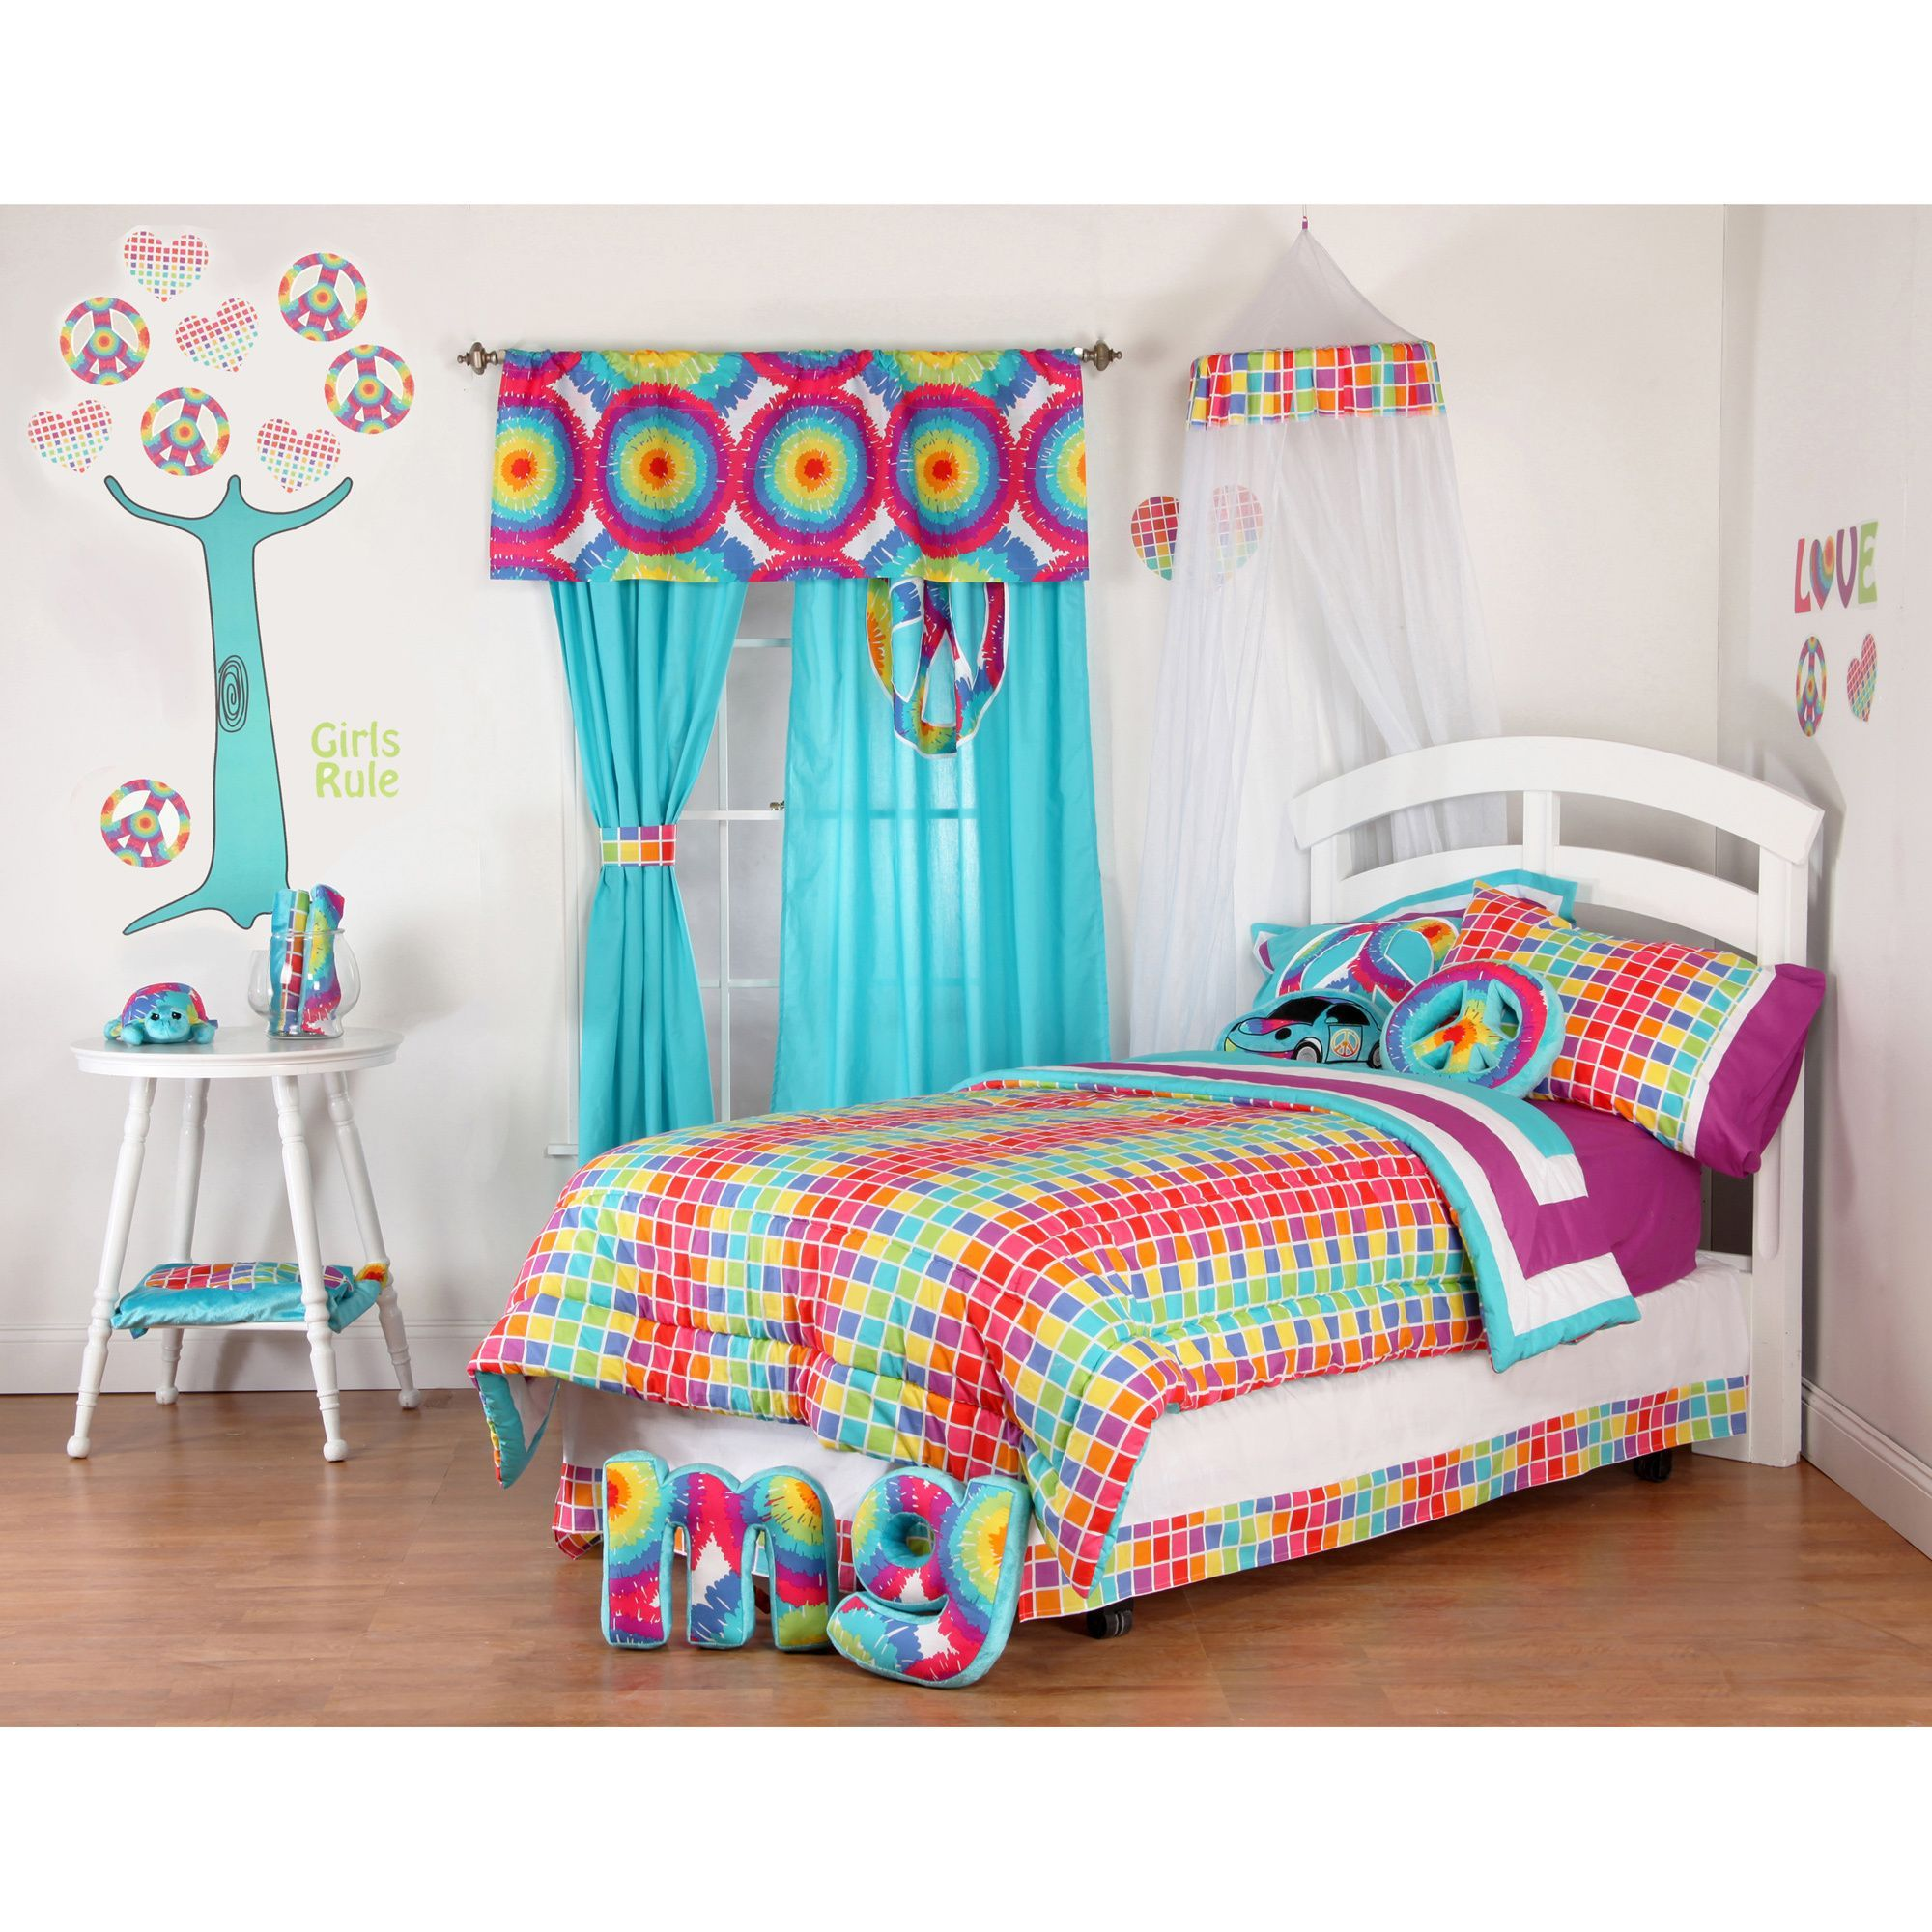 Terrific Tie Dye 8 piece Bed in a Bag with Sheet Set Overstock